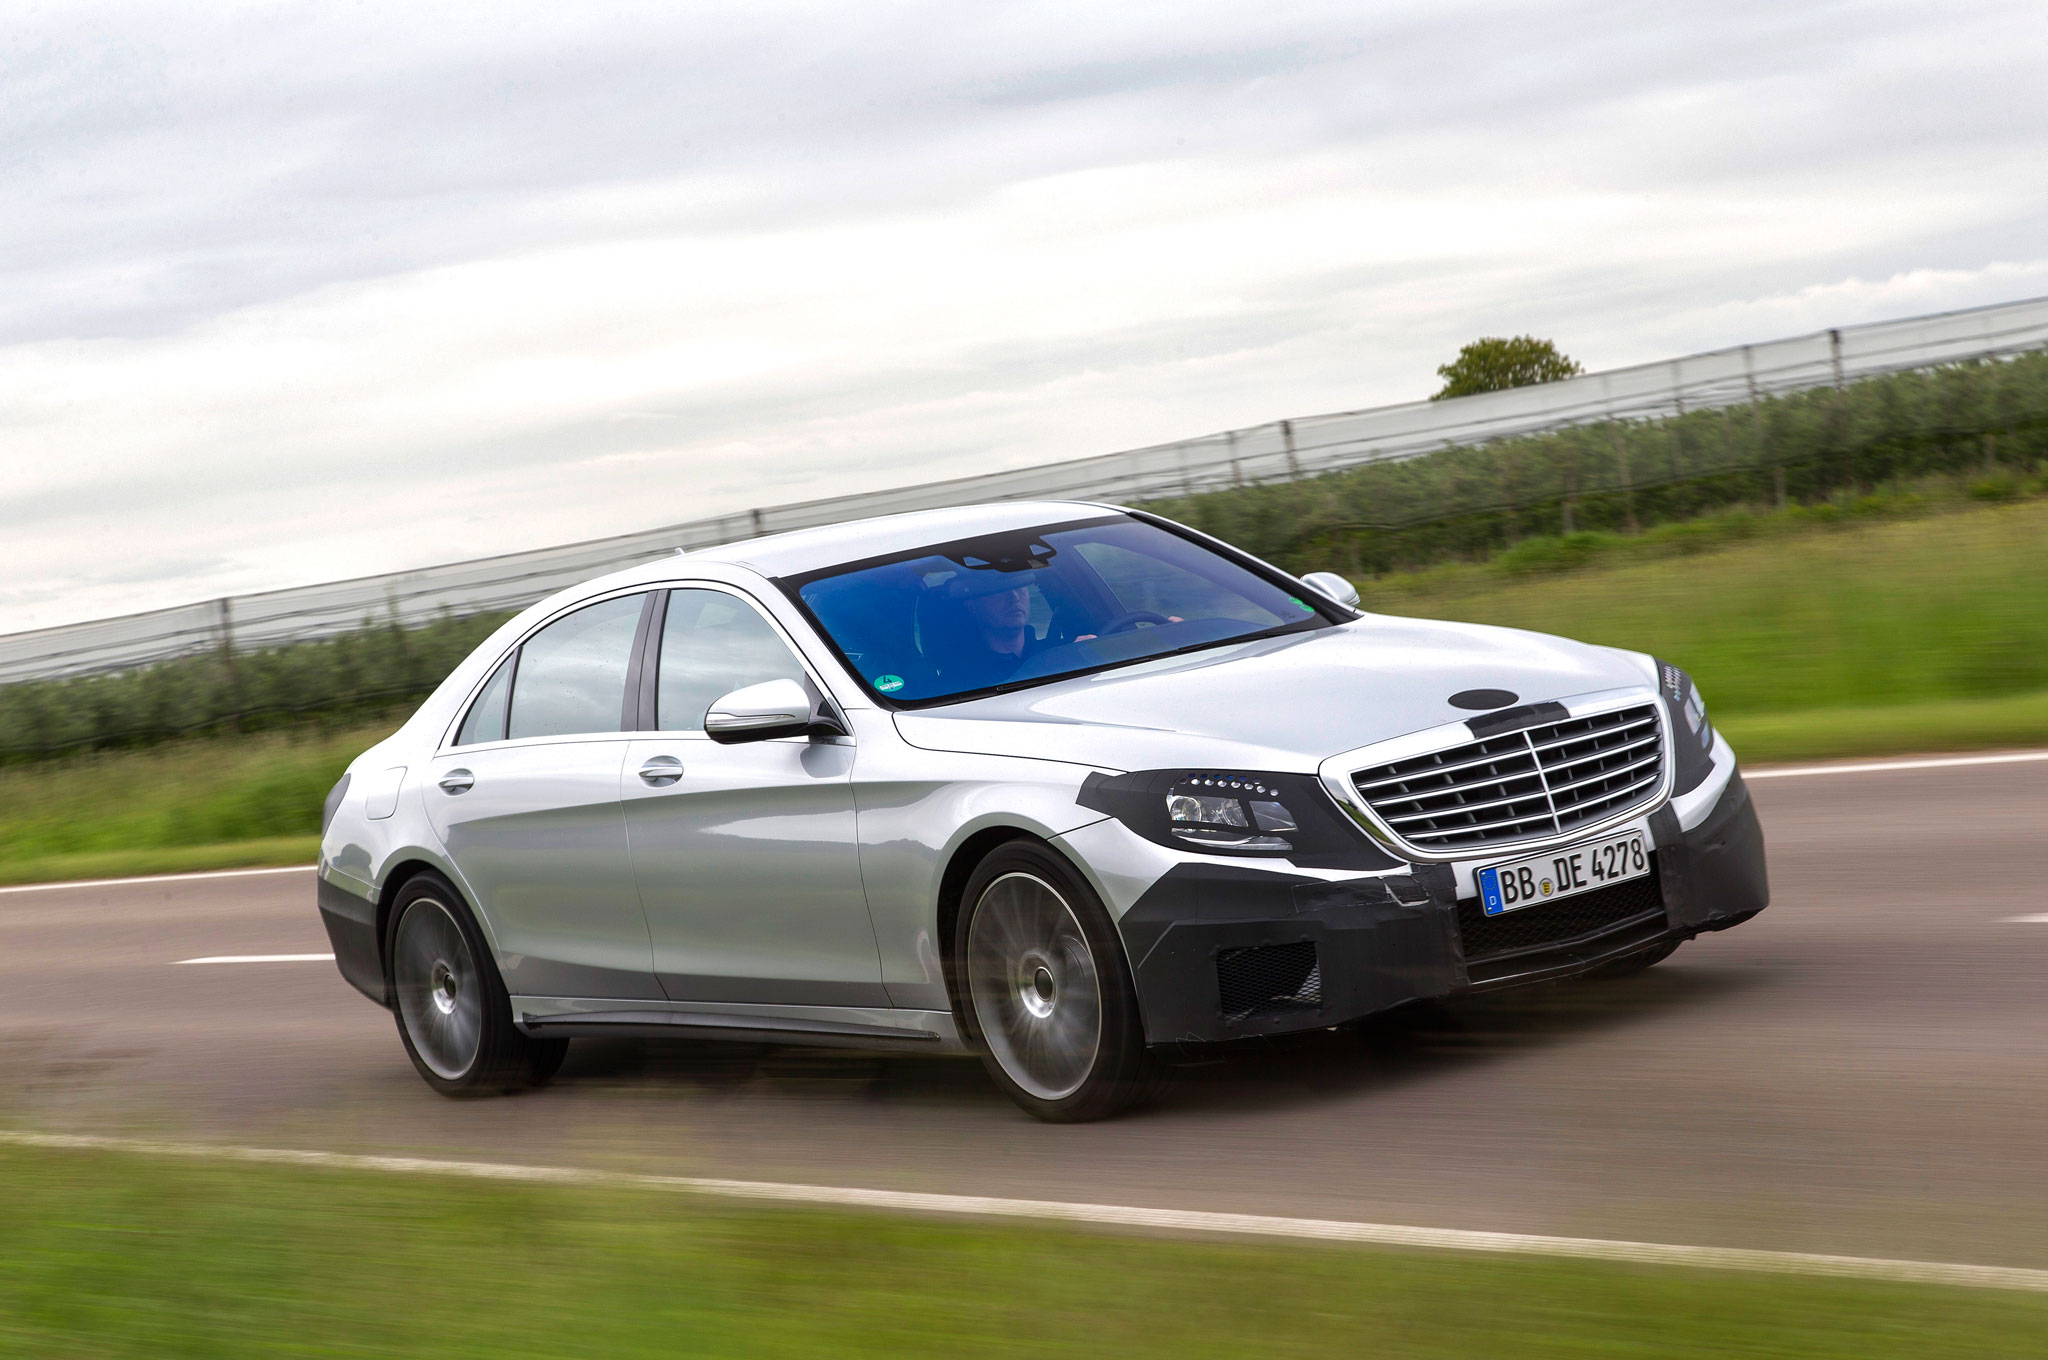 2014 Mercedes Benz S63 AMG 4Matic Front Right Side View 3